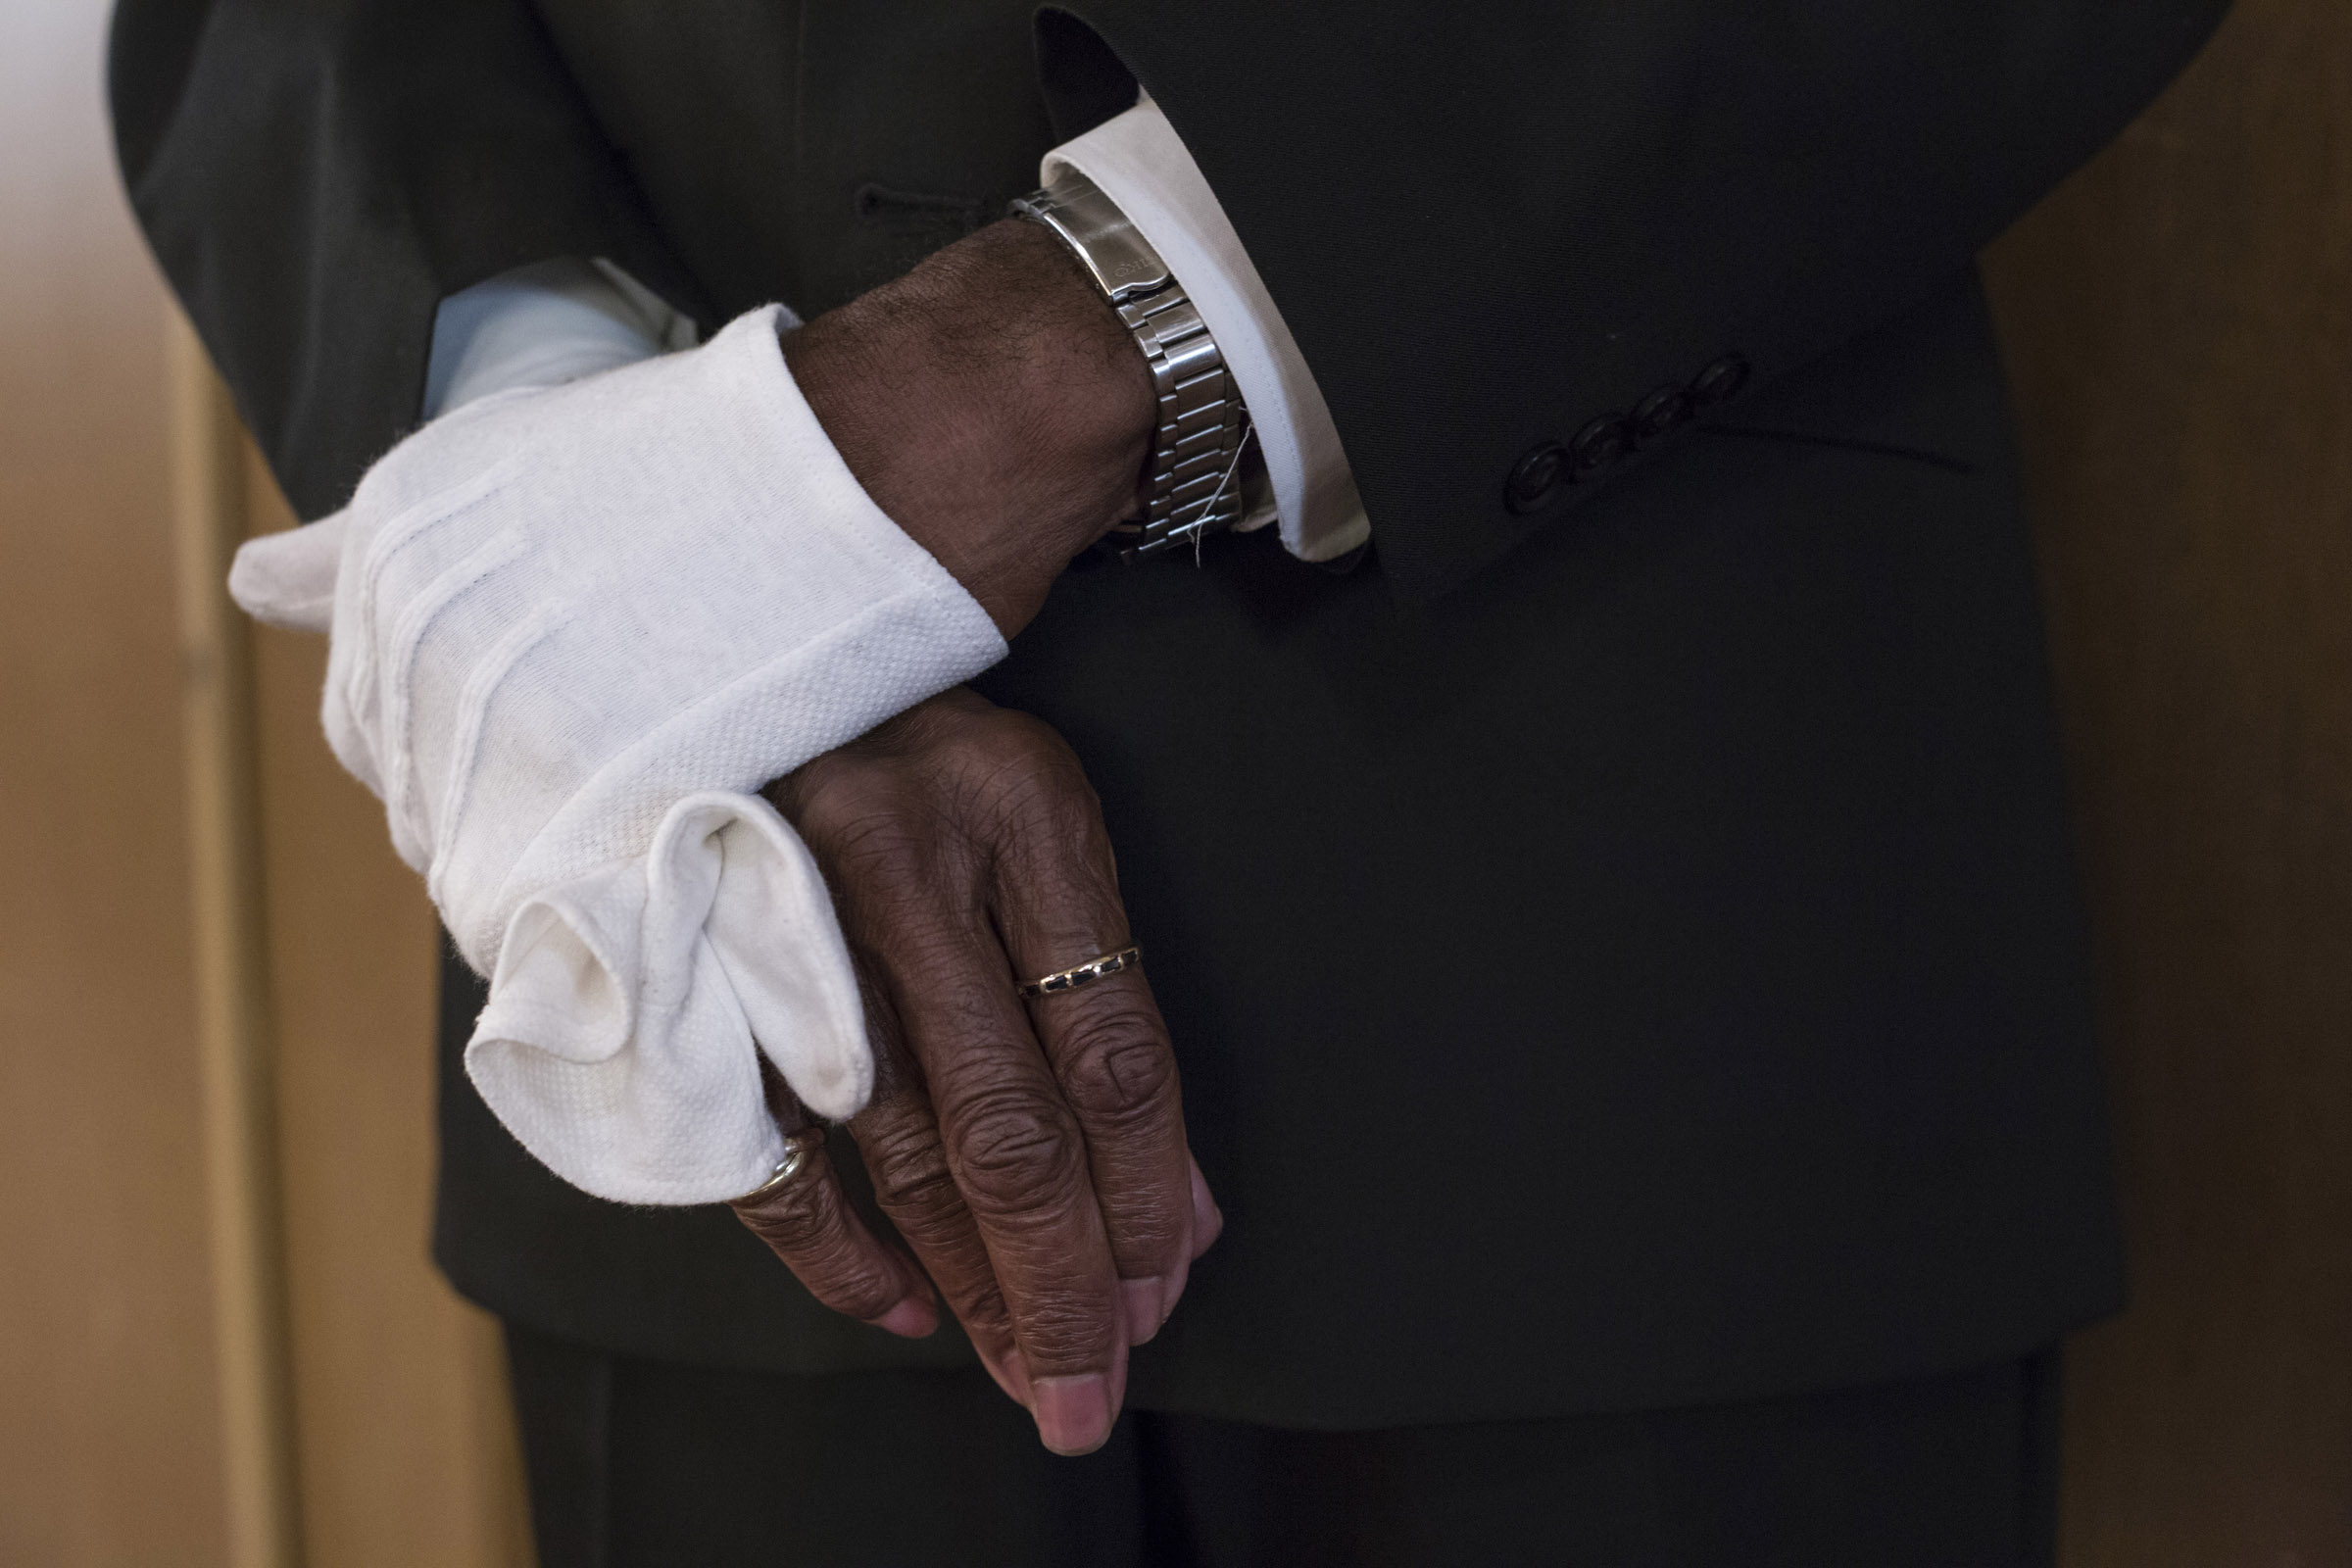 Alexander Williams, 76, holds his glove while listening to the sermon at Third Baptist Church in the Fillmore district of San Francisco, California, on Sunday, November 5, 2017. (Photo by Brittany Greeson)